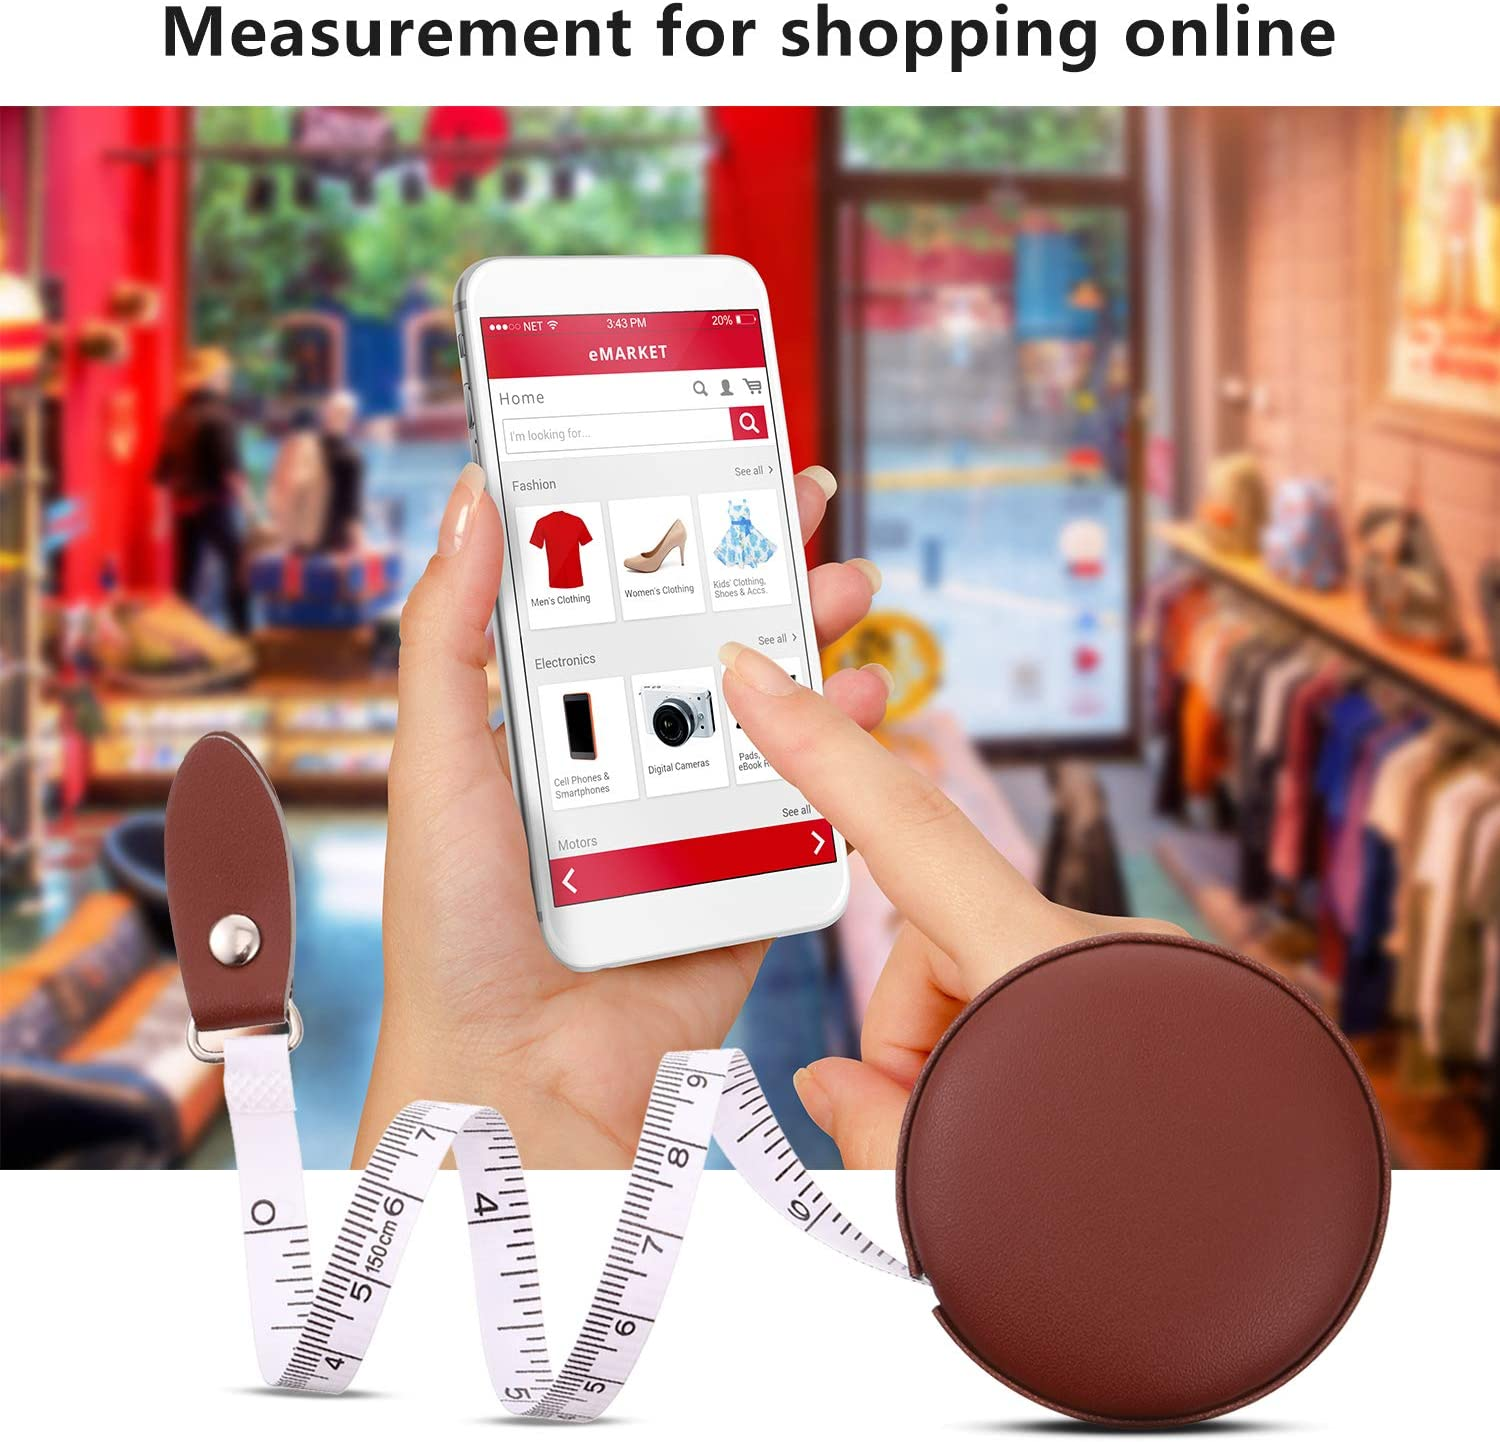 3 Pieces Body Measuring Tape Tape Measure Leather Retractable Tape Measure for Body or Weight Loss Accurate Sewing Tape Measure 60 Inch//1.5 M Brown Round